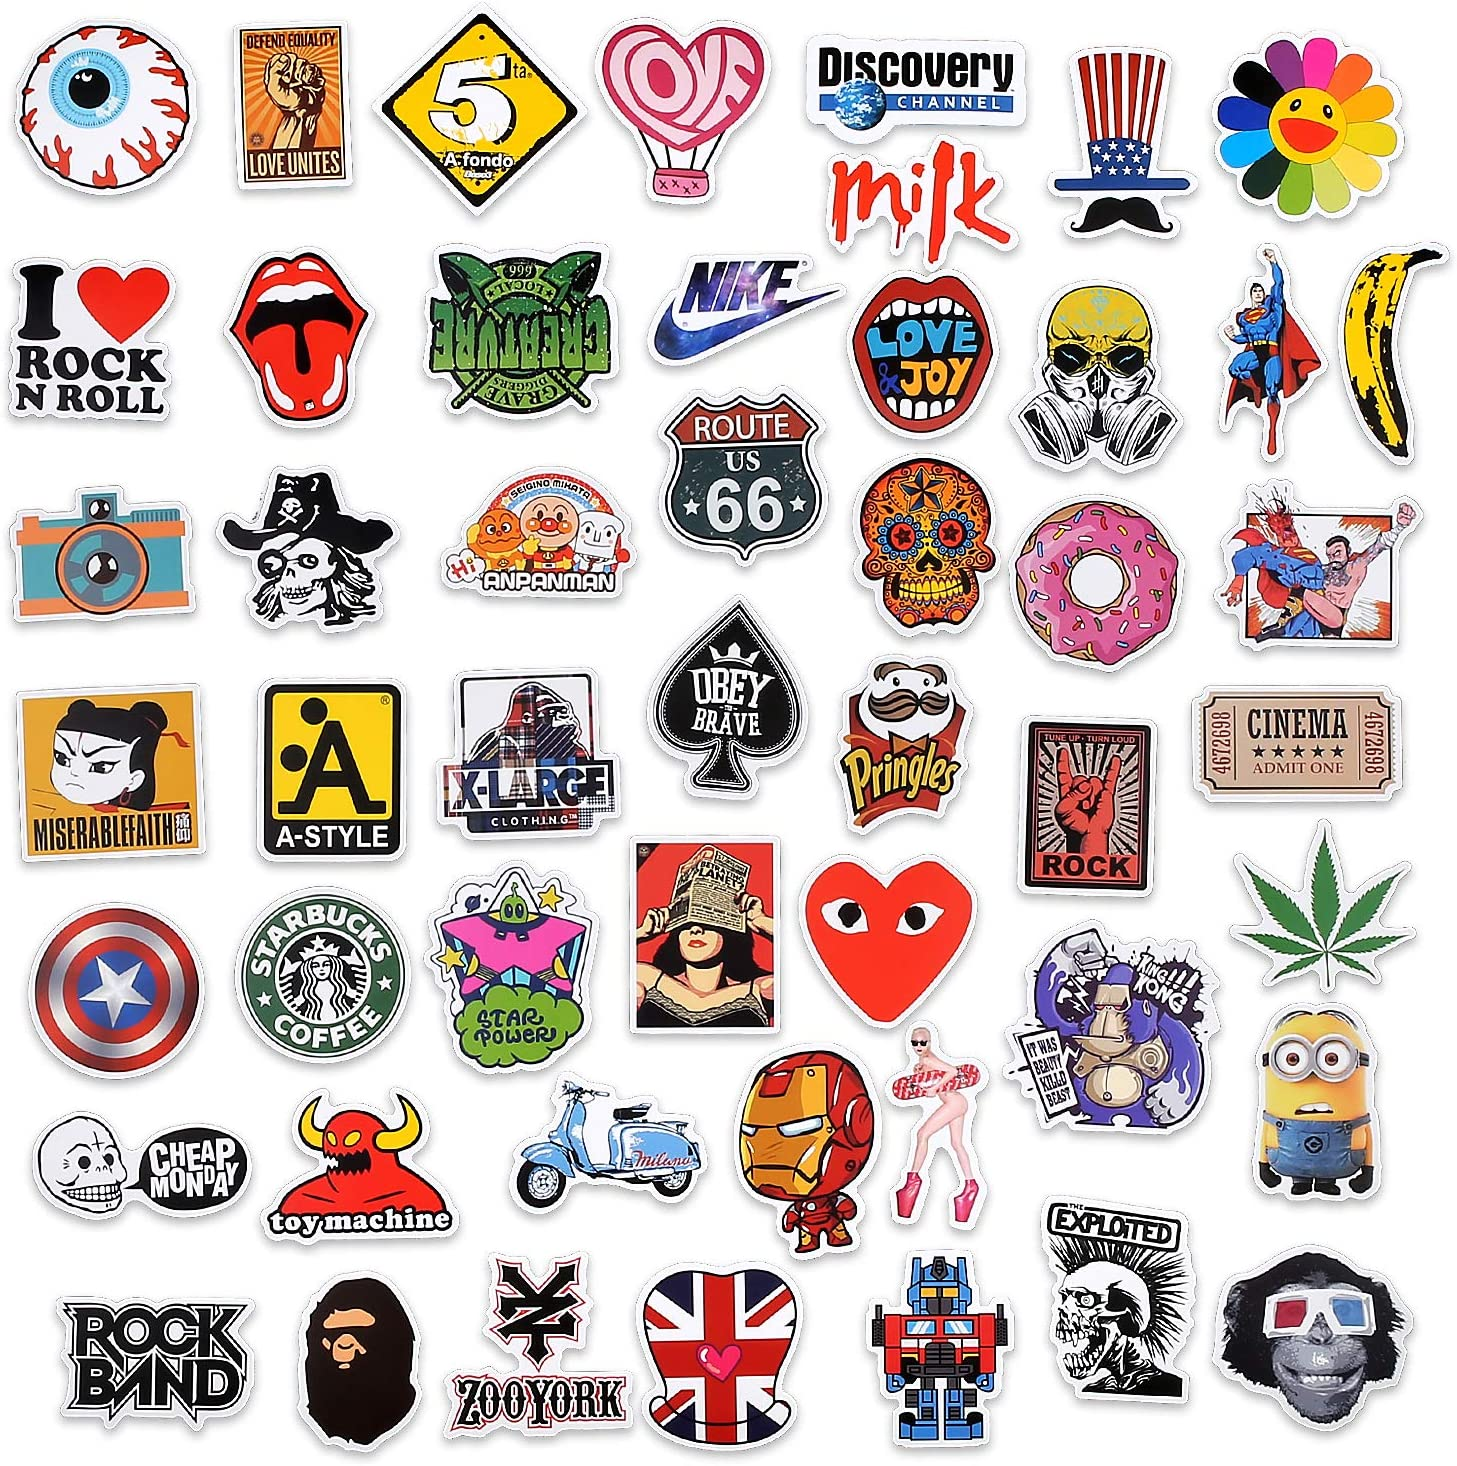 Suitcase Cartoon Vsco Stickers for Kids Teens Adults Motorcycle Waterproof Decals Vinyls for Phone Laptop EKKONG 100PCS Graffiti Stickers Pack Skateboard Bicycle A Style Cars